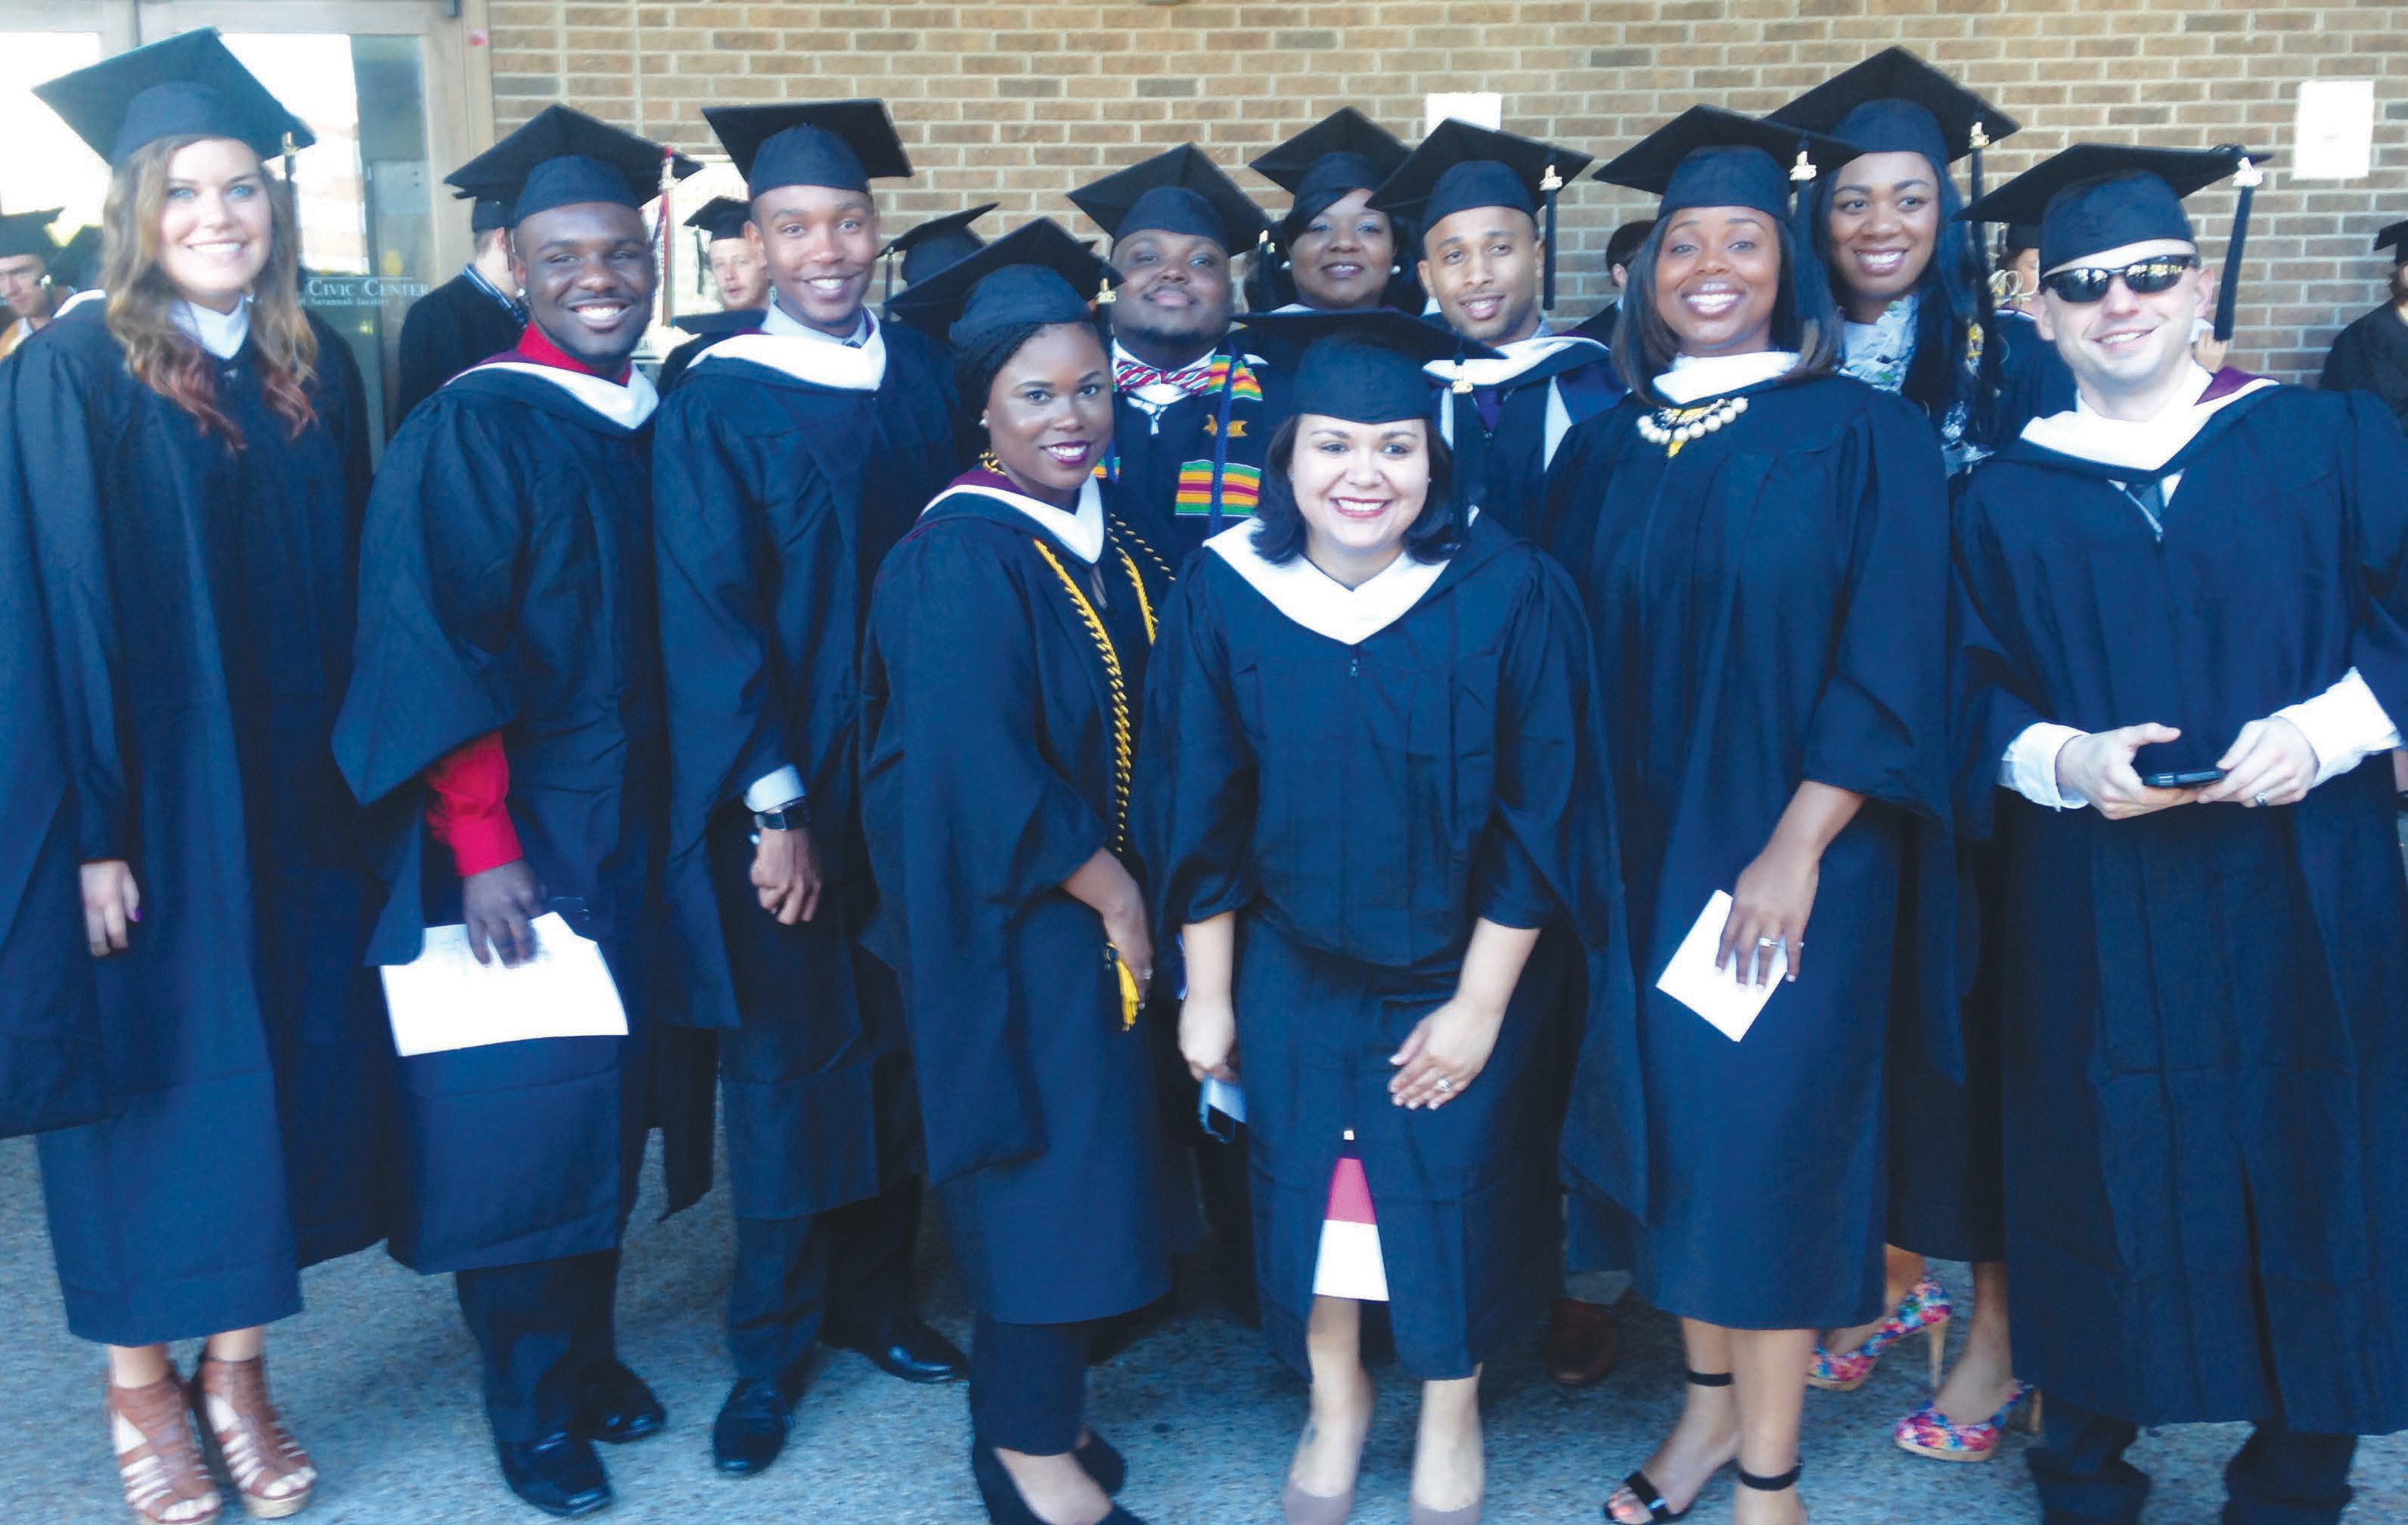 Graduates of Armstrong's Professional Communications and Leadership Program